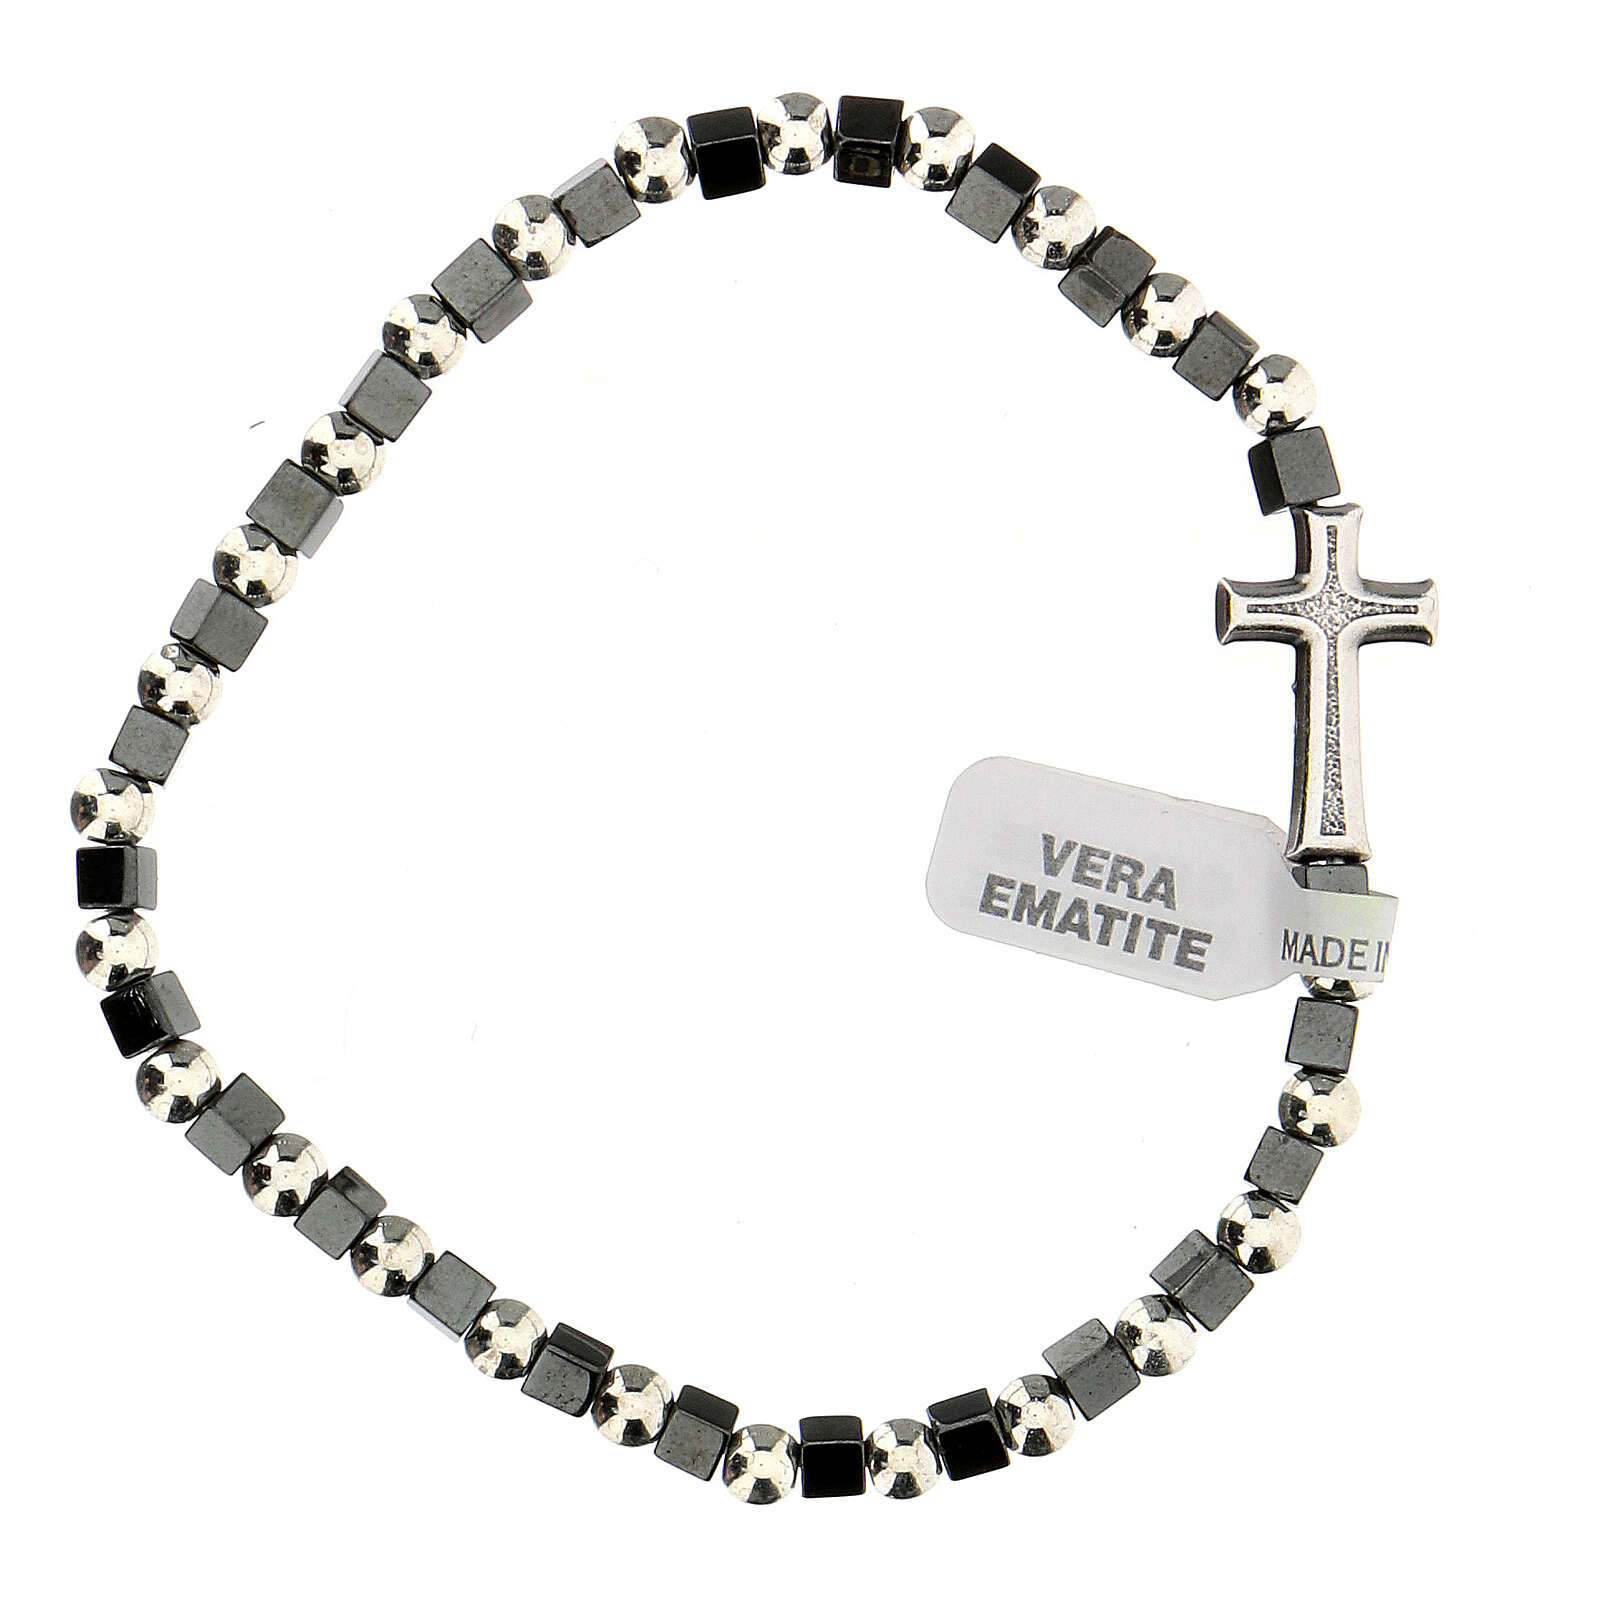 Hematite bracelet with 3 mm beads and cross charm 4